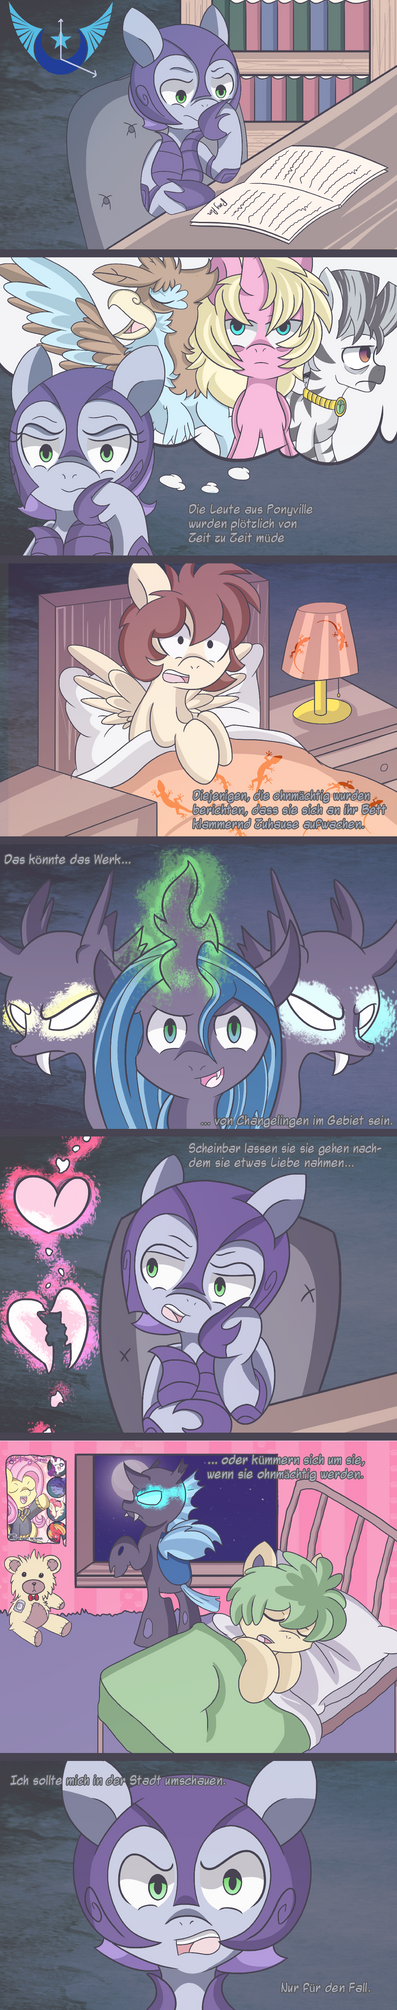 Gallow's Rising Part 1 - German by LimitBreaker13